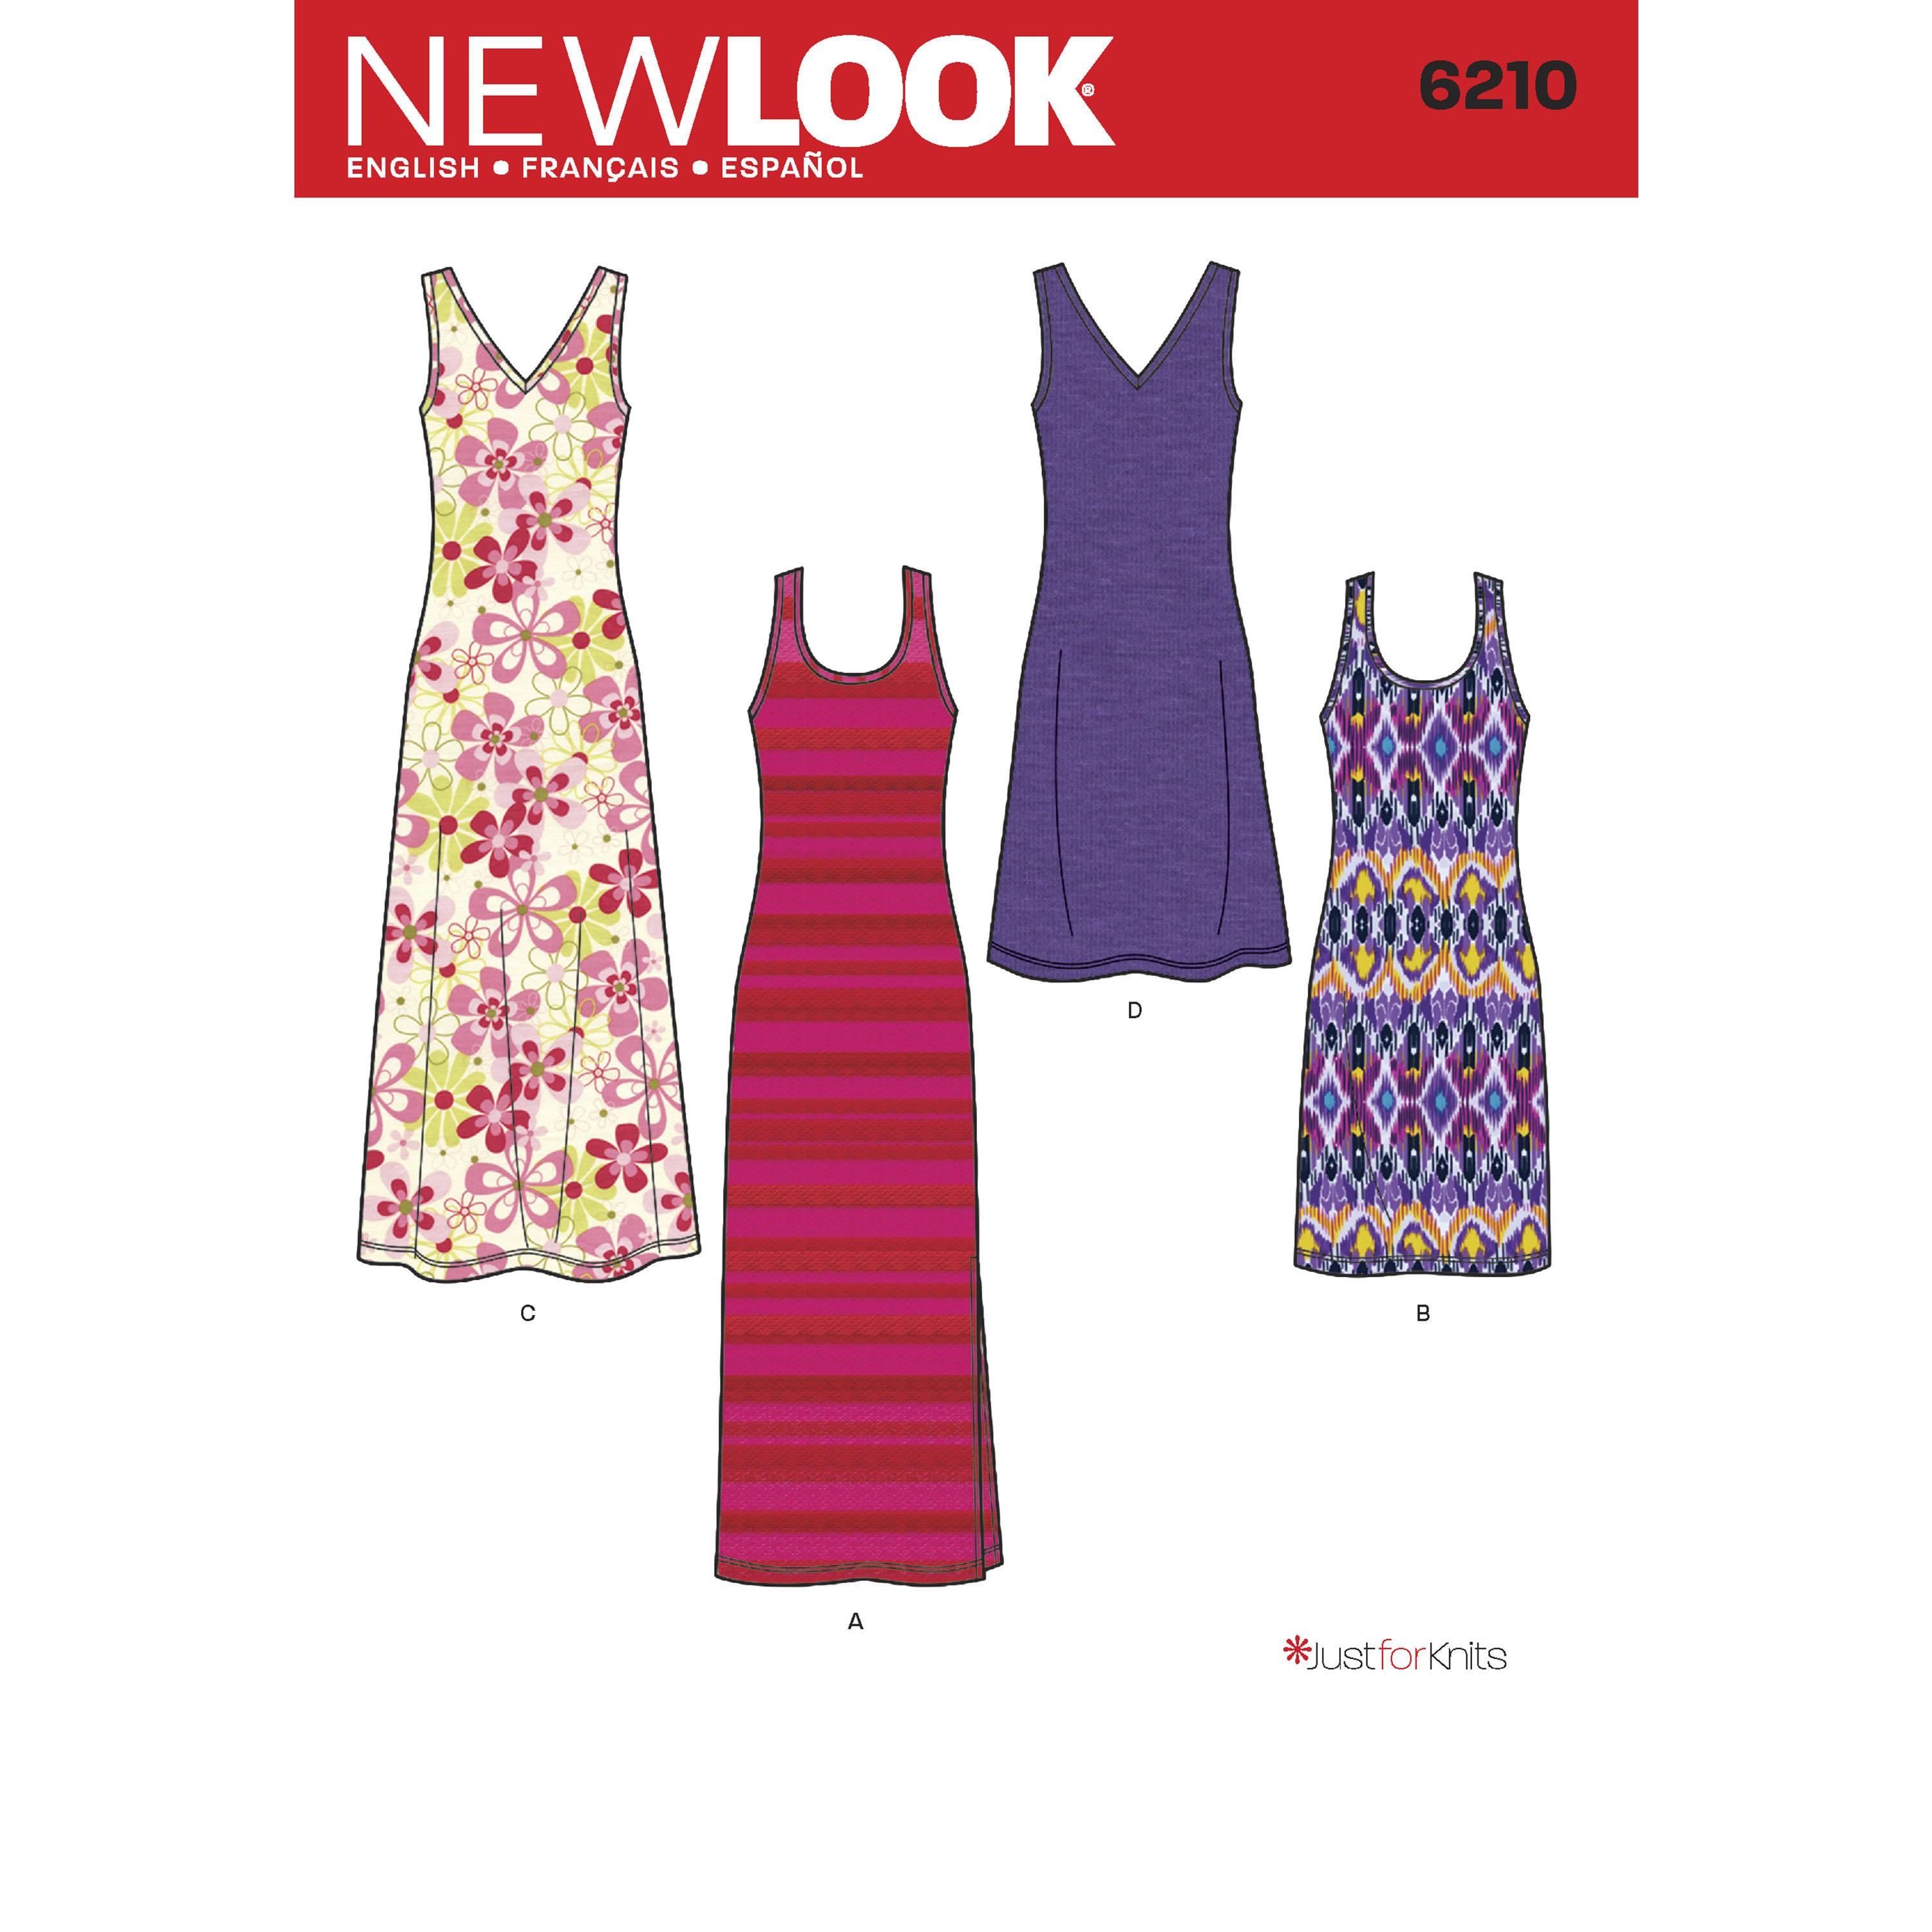 NewLook N6210 Misses' Knit Dress in Two Lengths